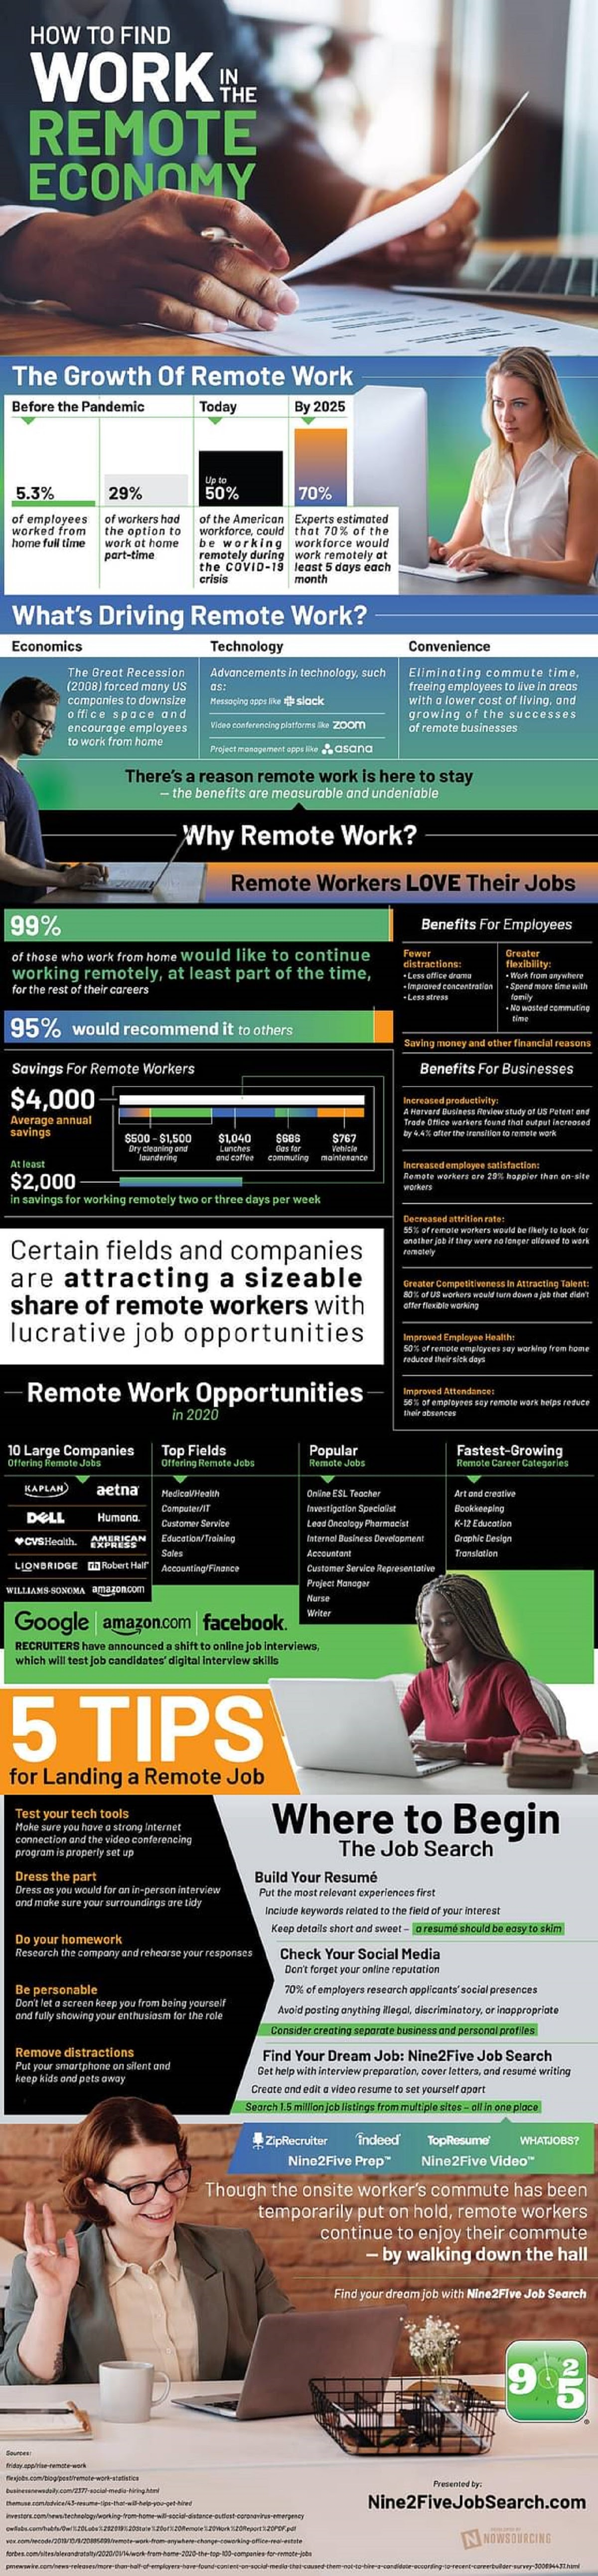 how-to-find-work-in-the-remote-economy-infographic